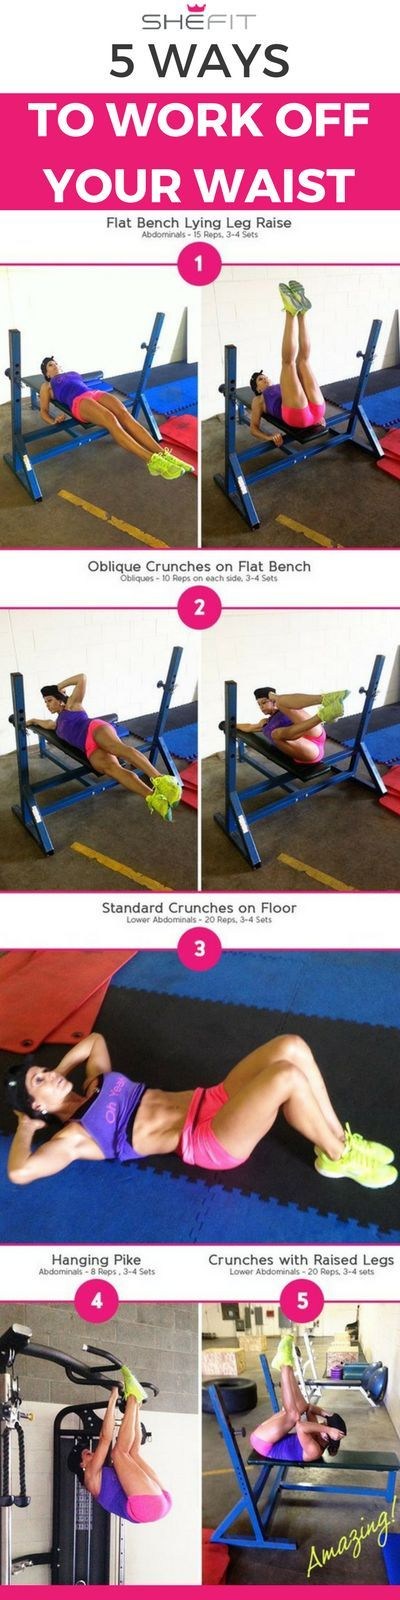 How to Lose that Muffin Top: Beginner Ab Workout for Women | Health + Fitness Tips